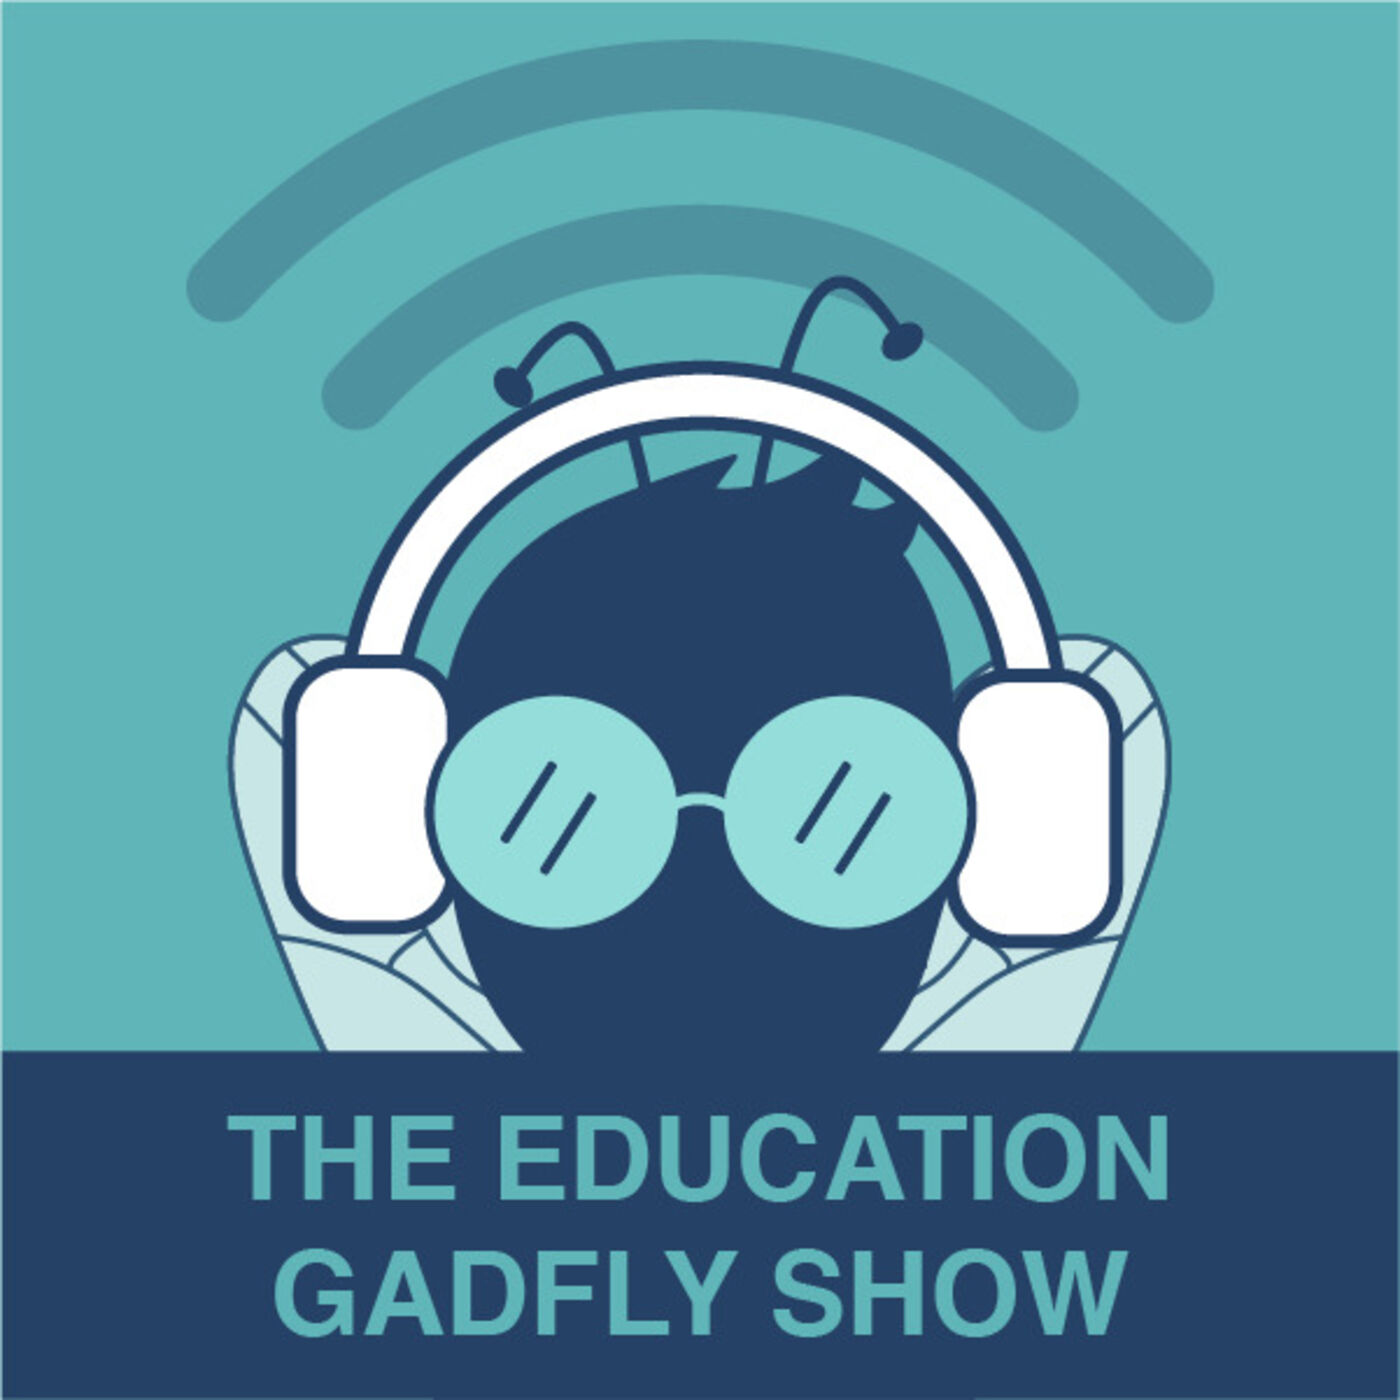 How the pandemic could lead to smarter school spending - 09/23/20